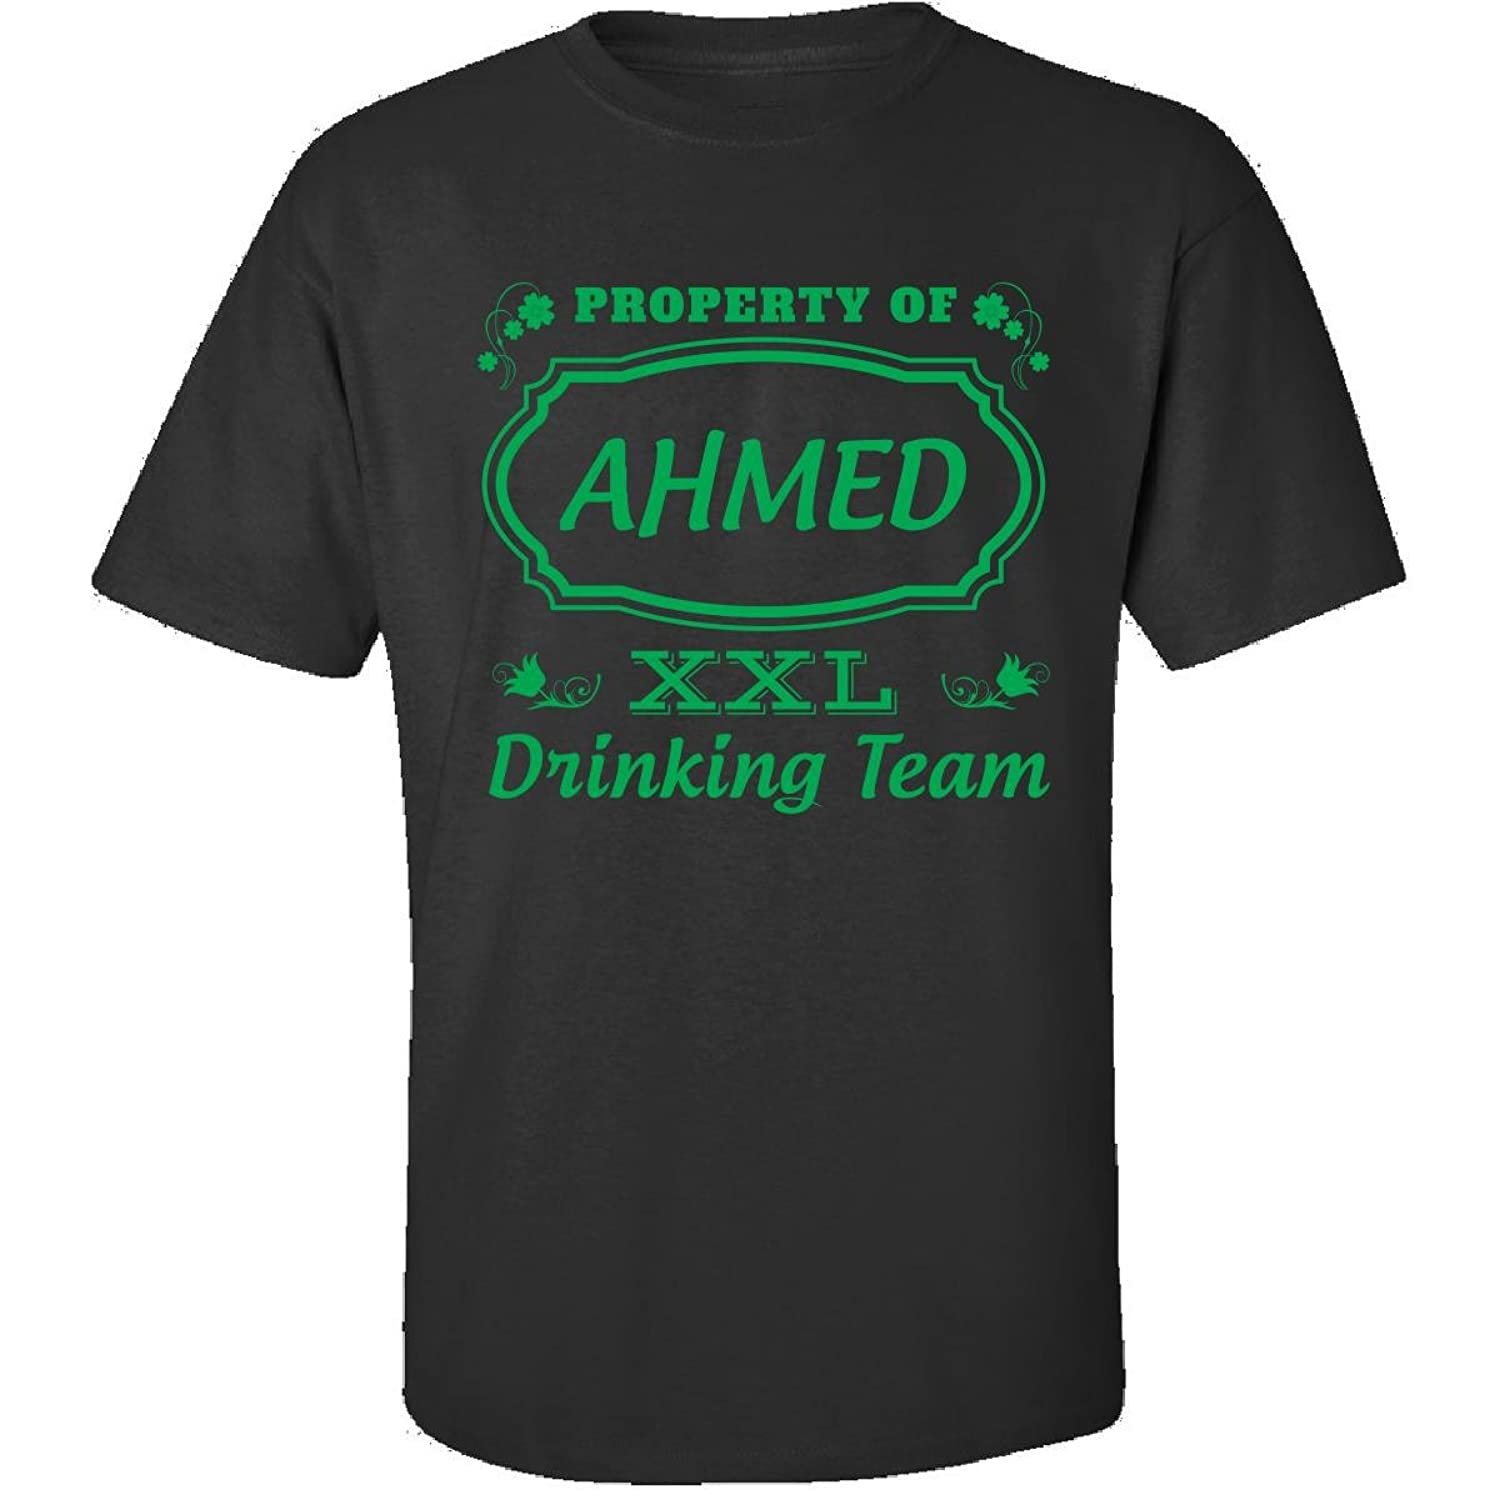 Property Of Ahmed St Patrick Day Beer Drinking Team - Adult Shirt